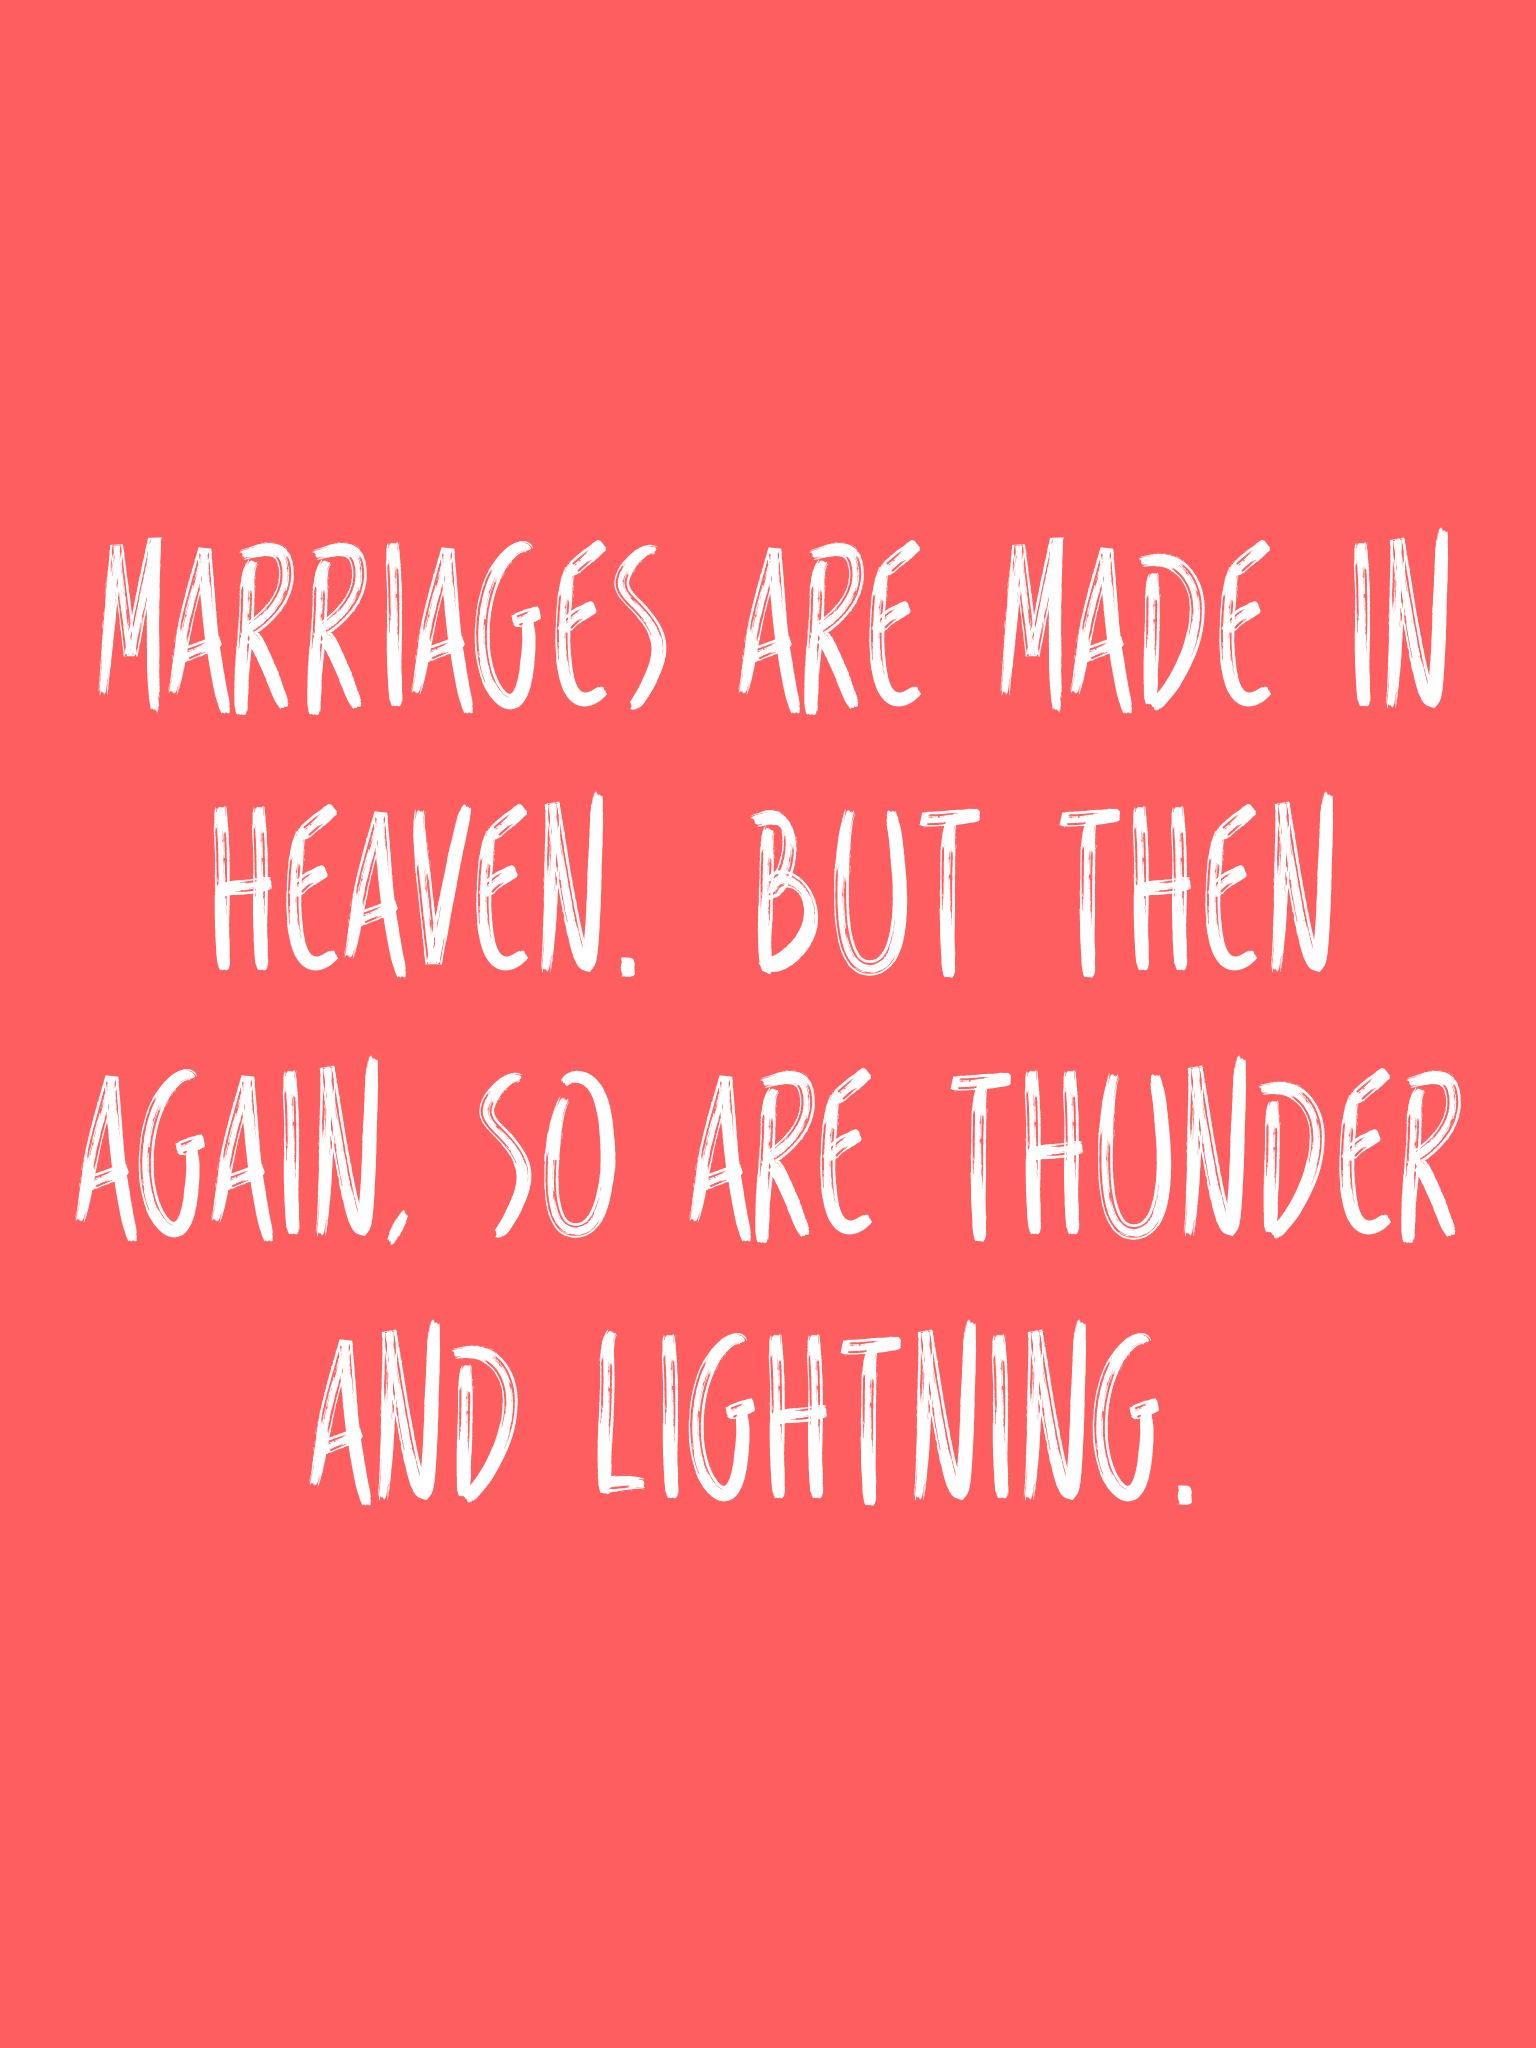 Love Quotes App Glamorous Marriages Are Made In Heavenbut Then Again So Are Thunder And